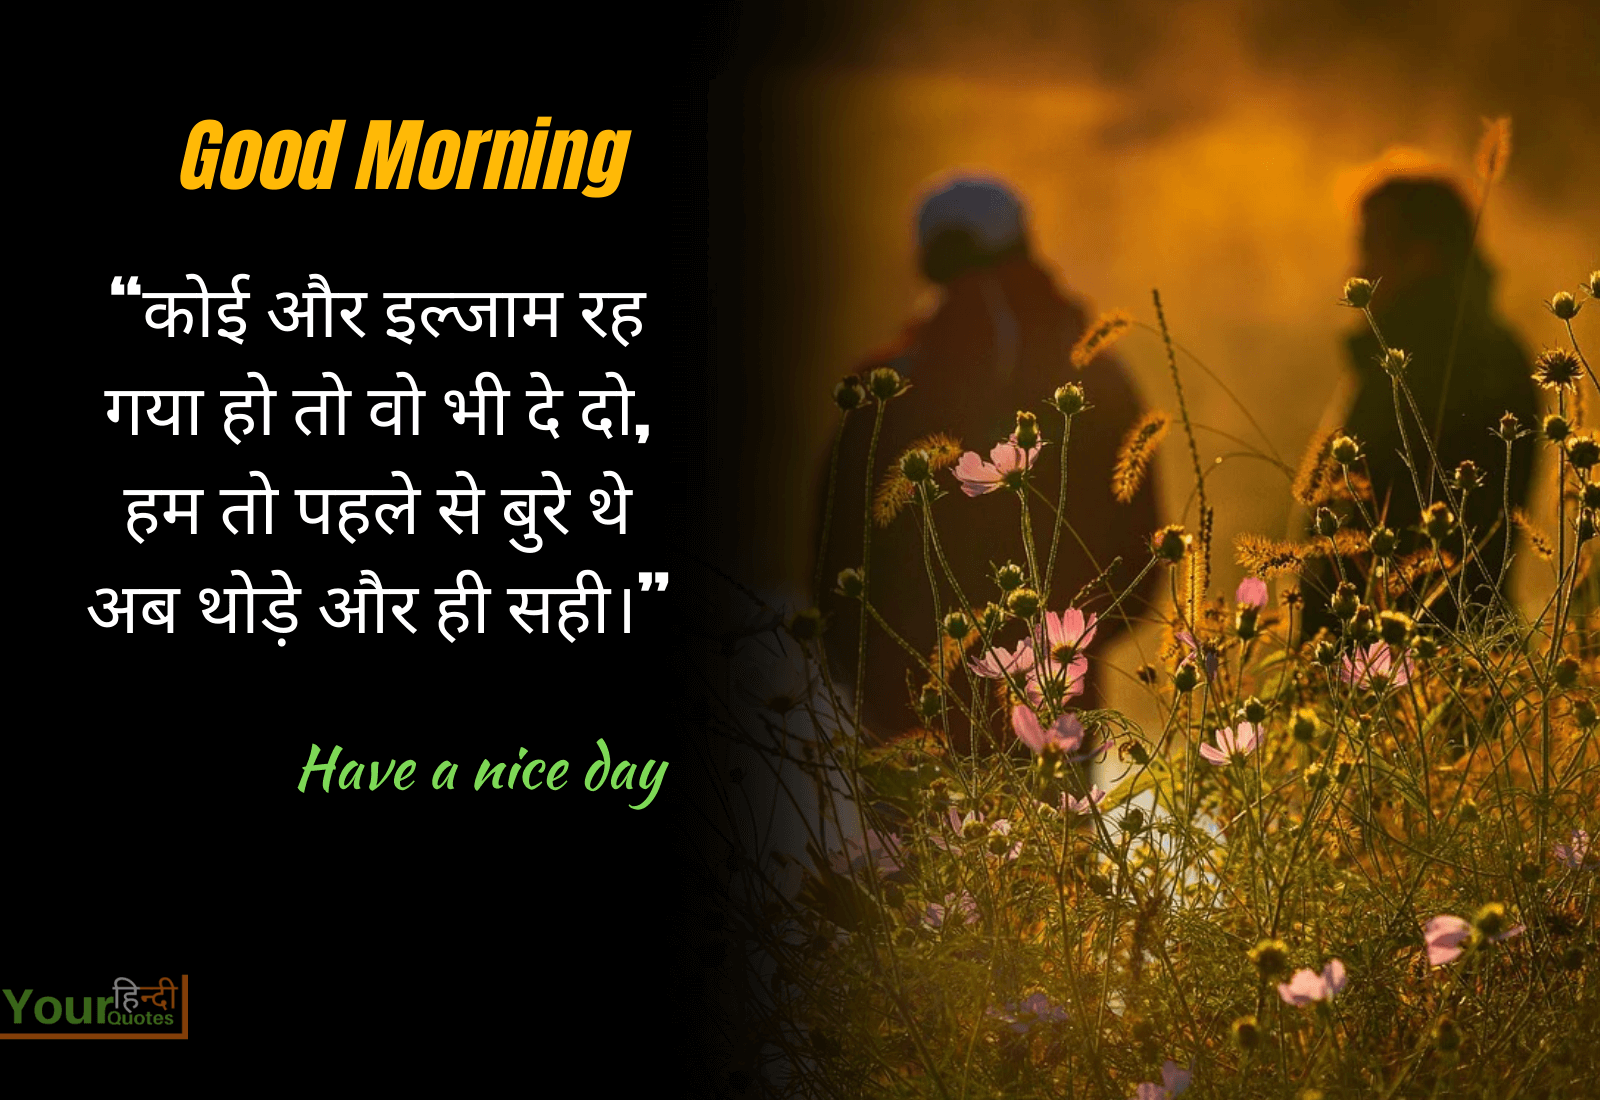 Good Morning Hindi Shayari Image